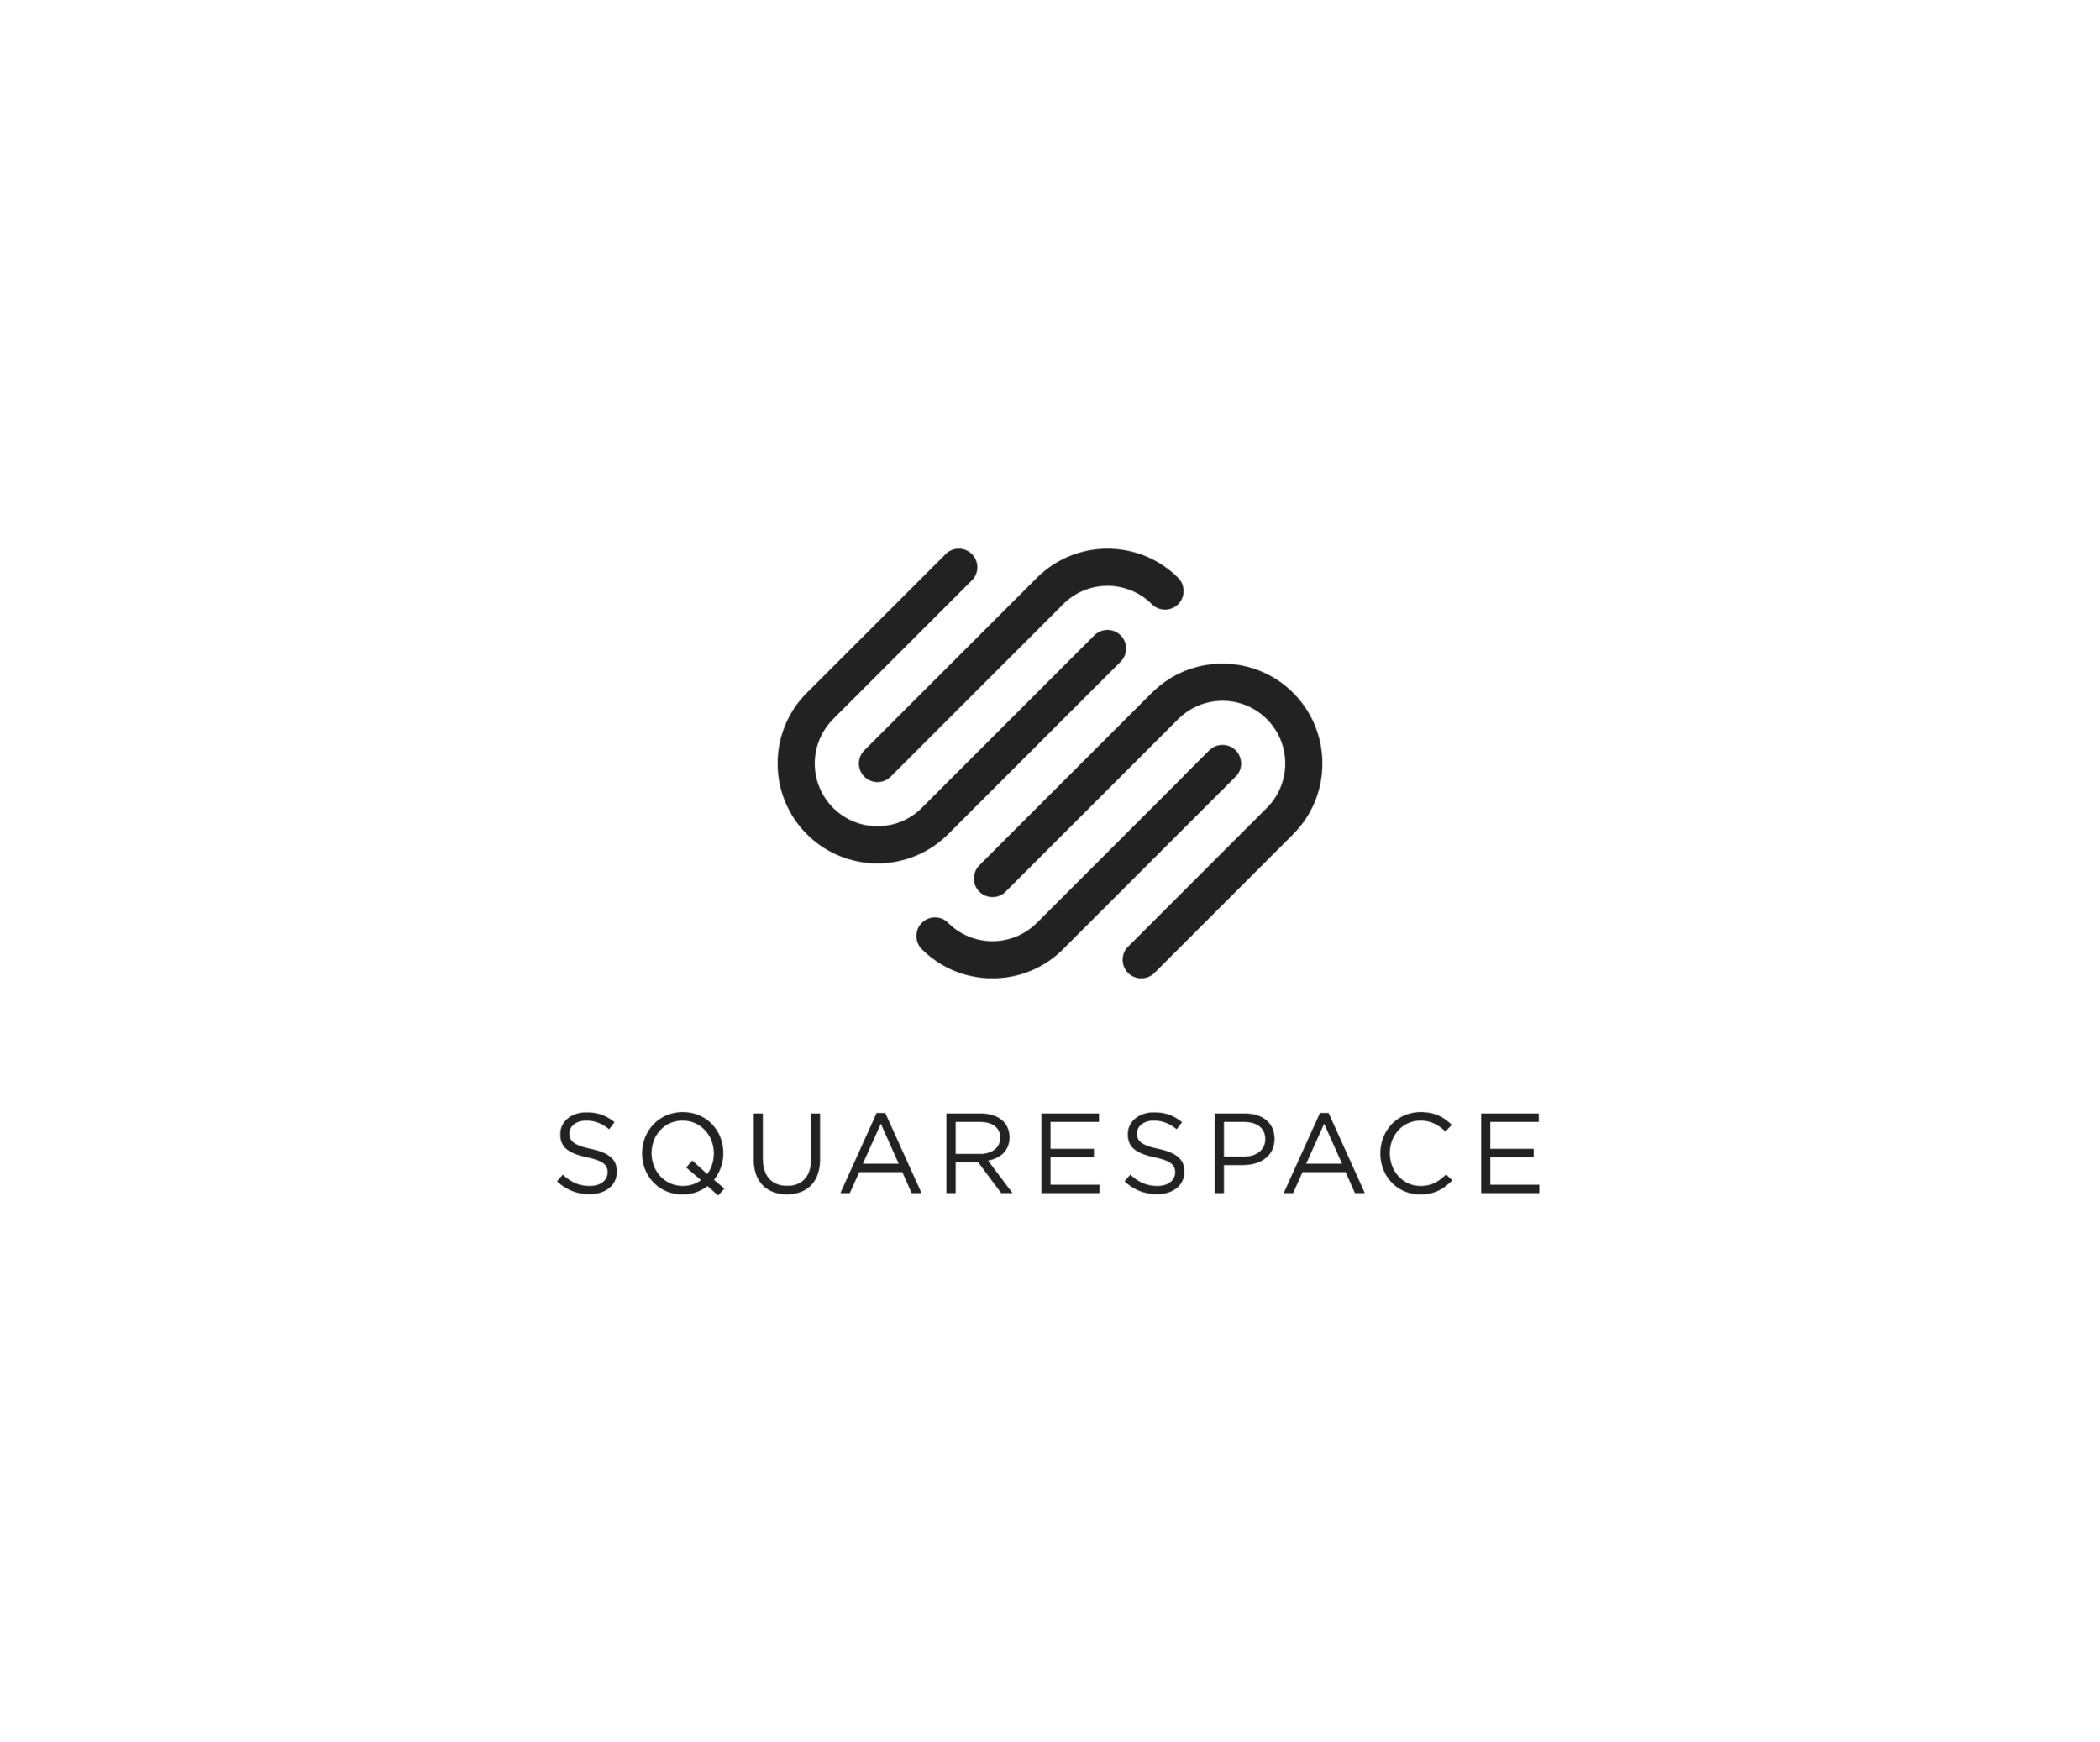 squarespace-logo-stacked-black.png